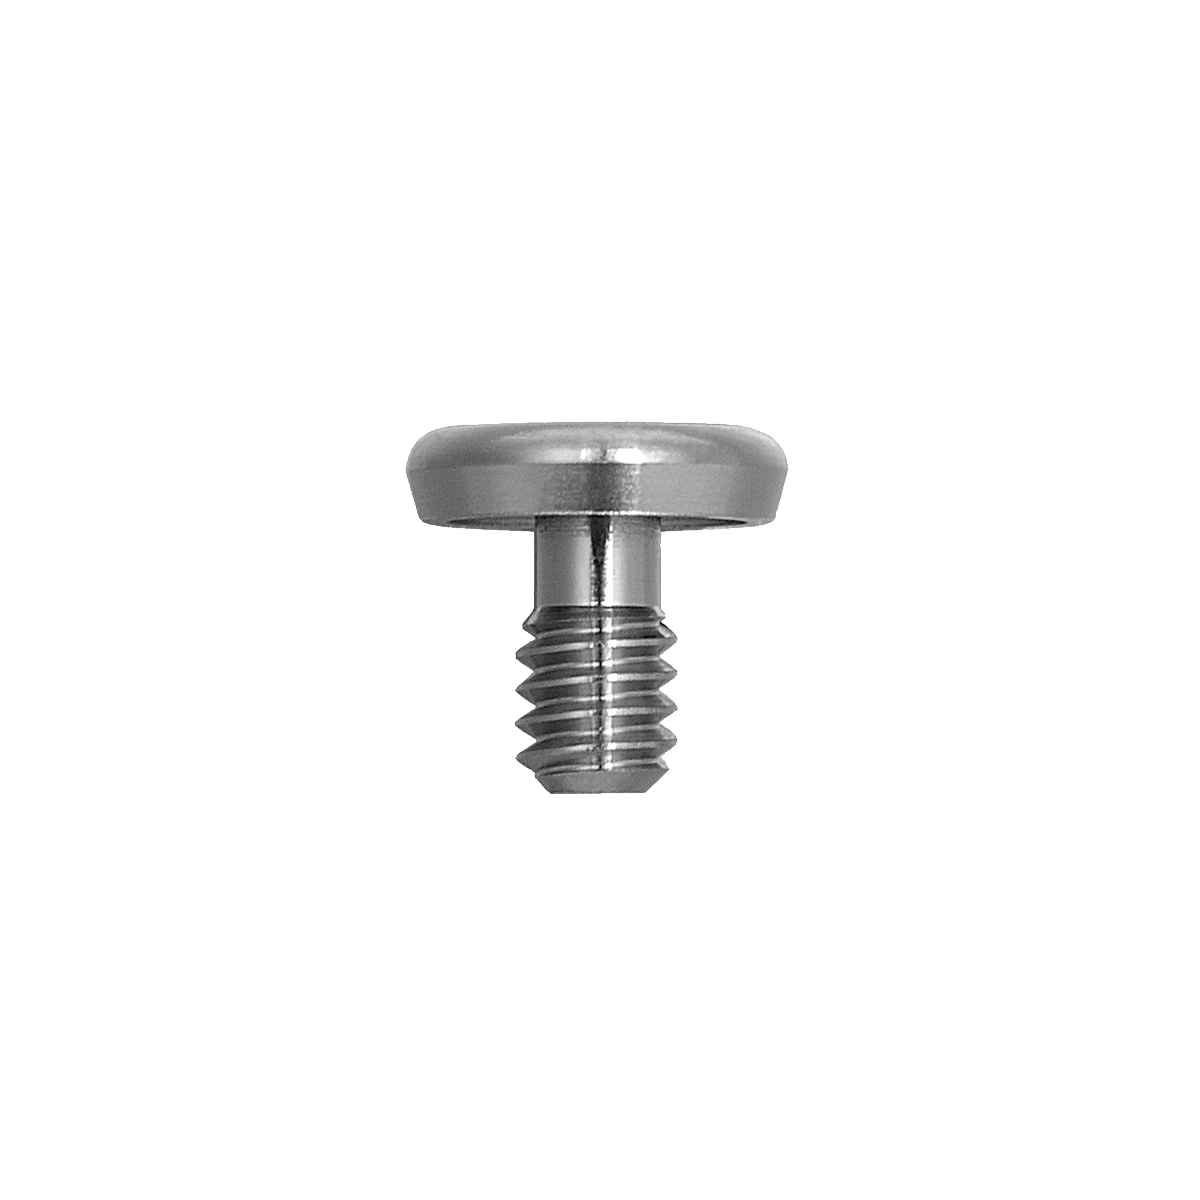 Implant screw